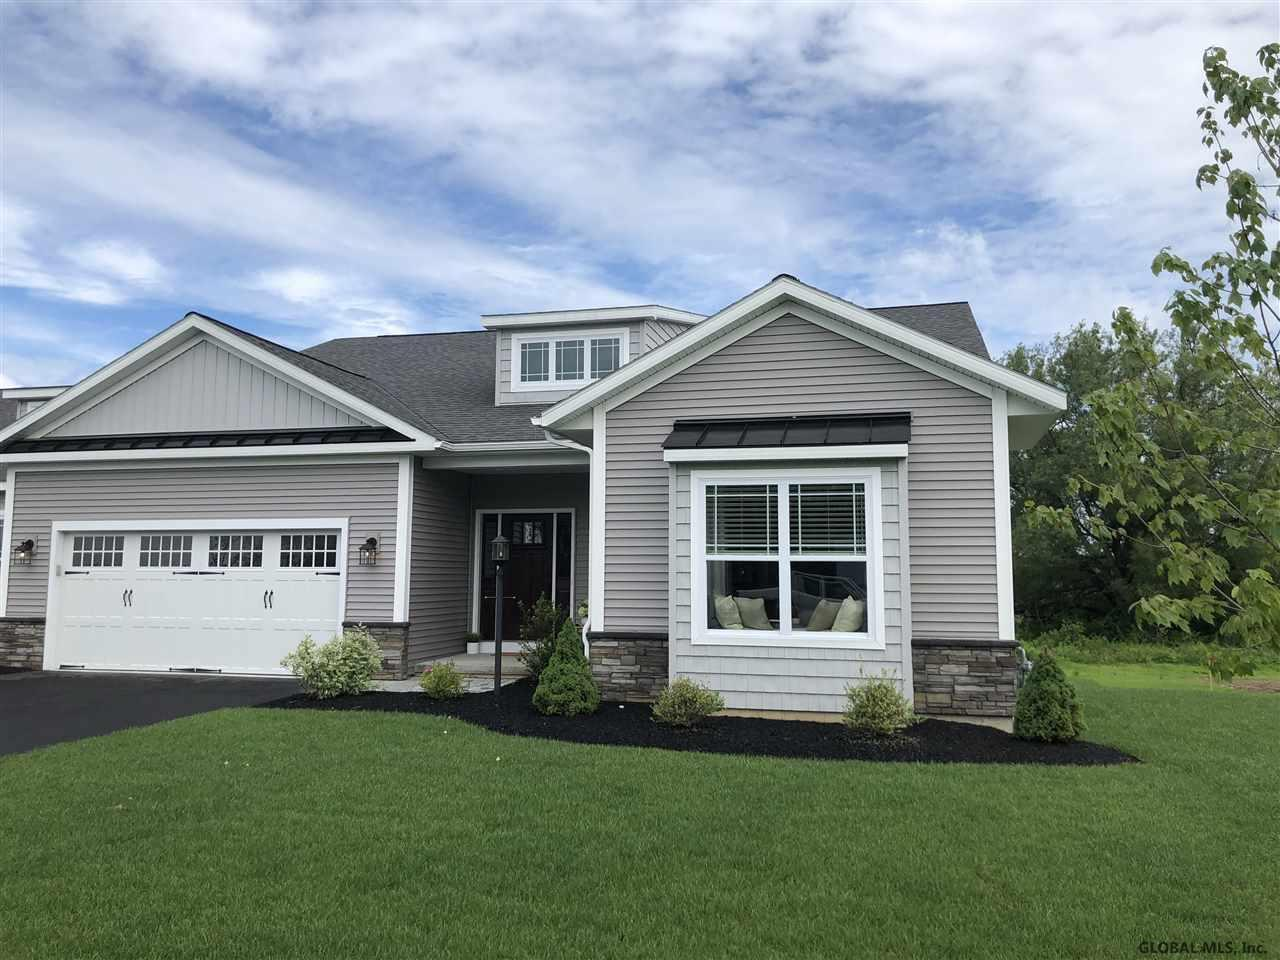 37 Vista Ct In Clifton Park Ny Listed For 344 900 00 By